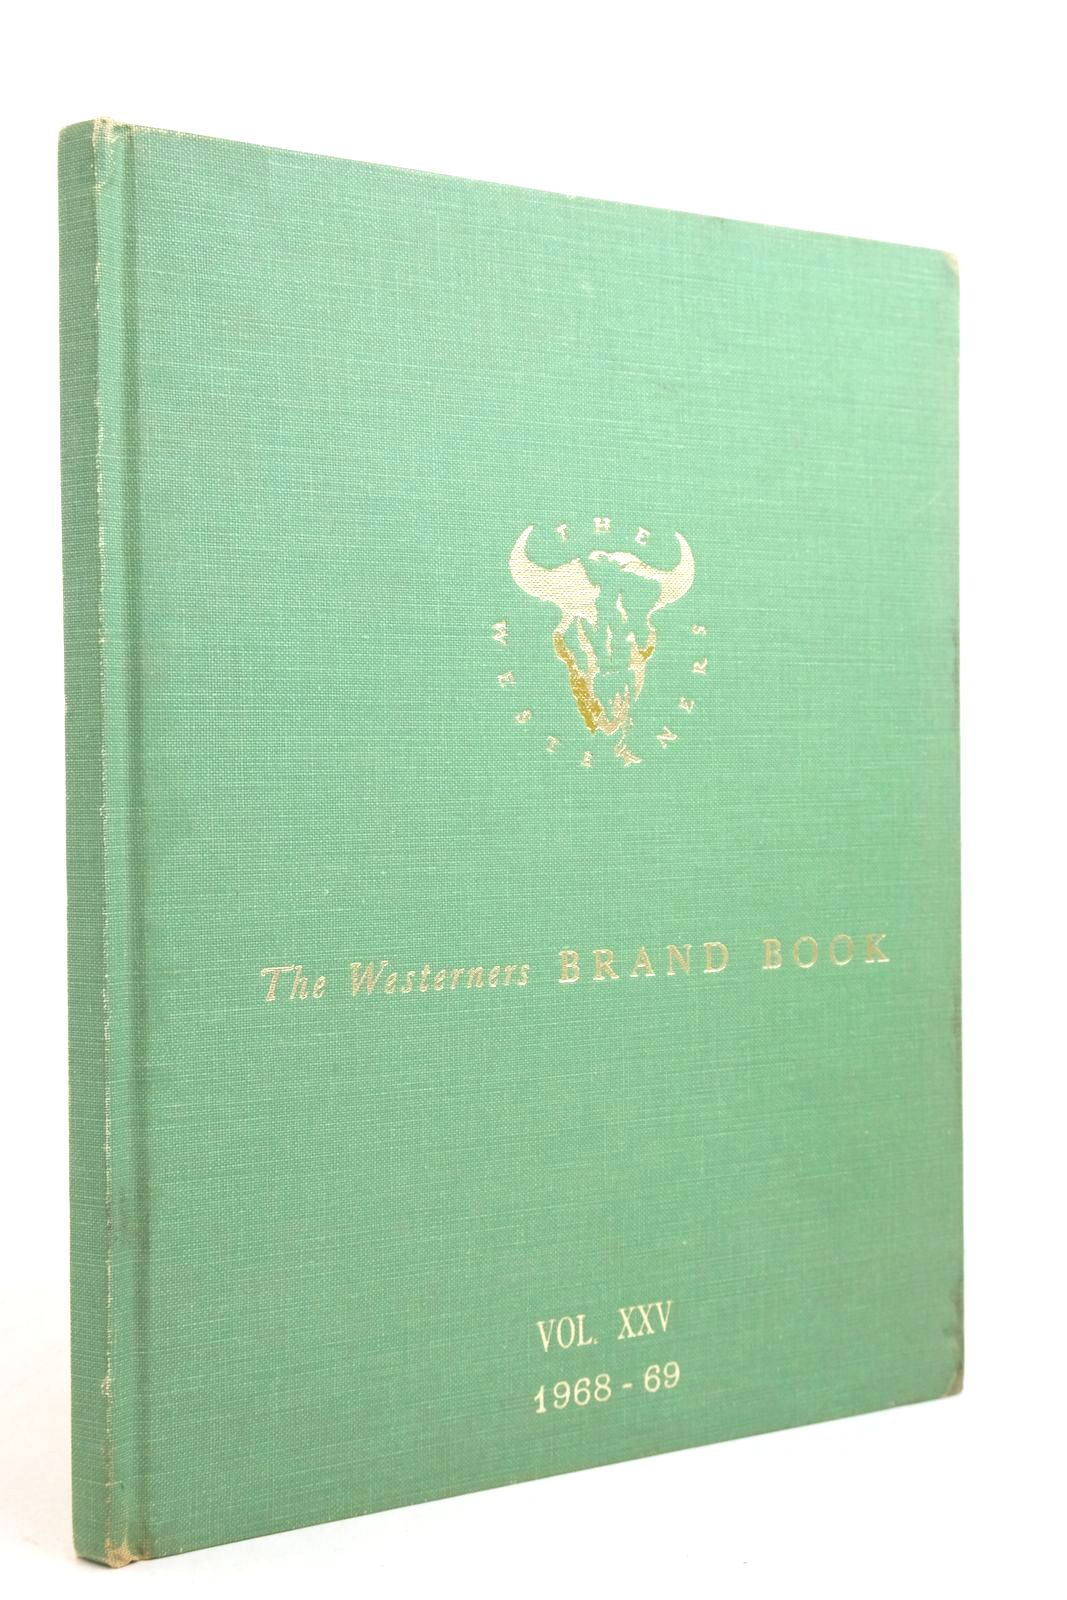 Photo of THE WESTERNERS BRAND BOOK VOLUME XXV MARCH 1968 TO FEBRUARY 1969- Stock Number: 2134829